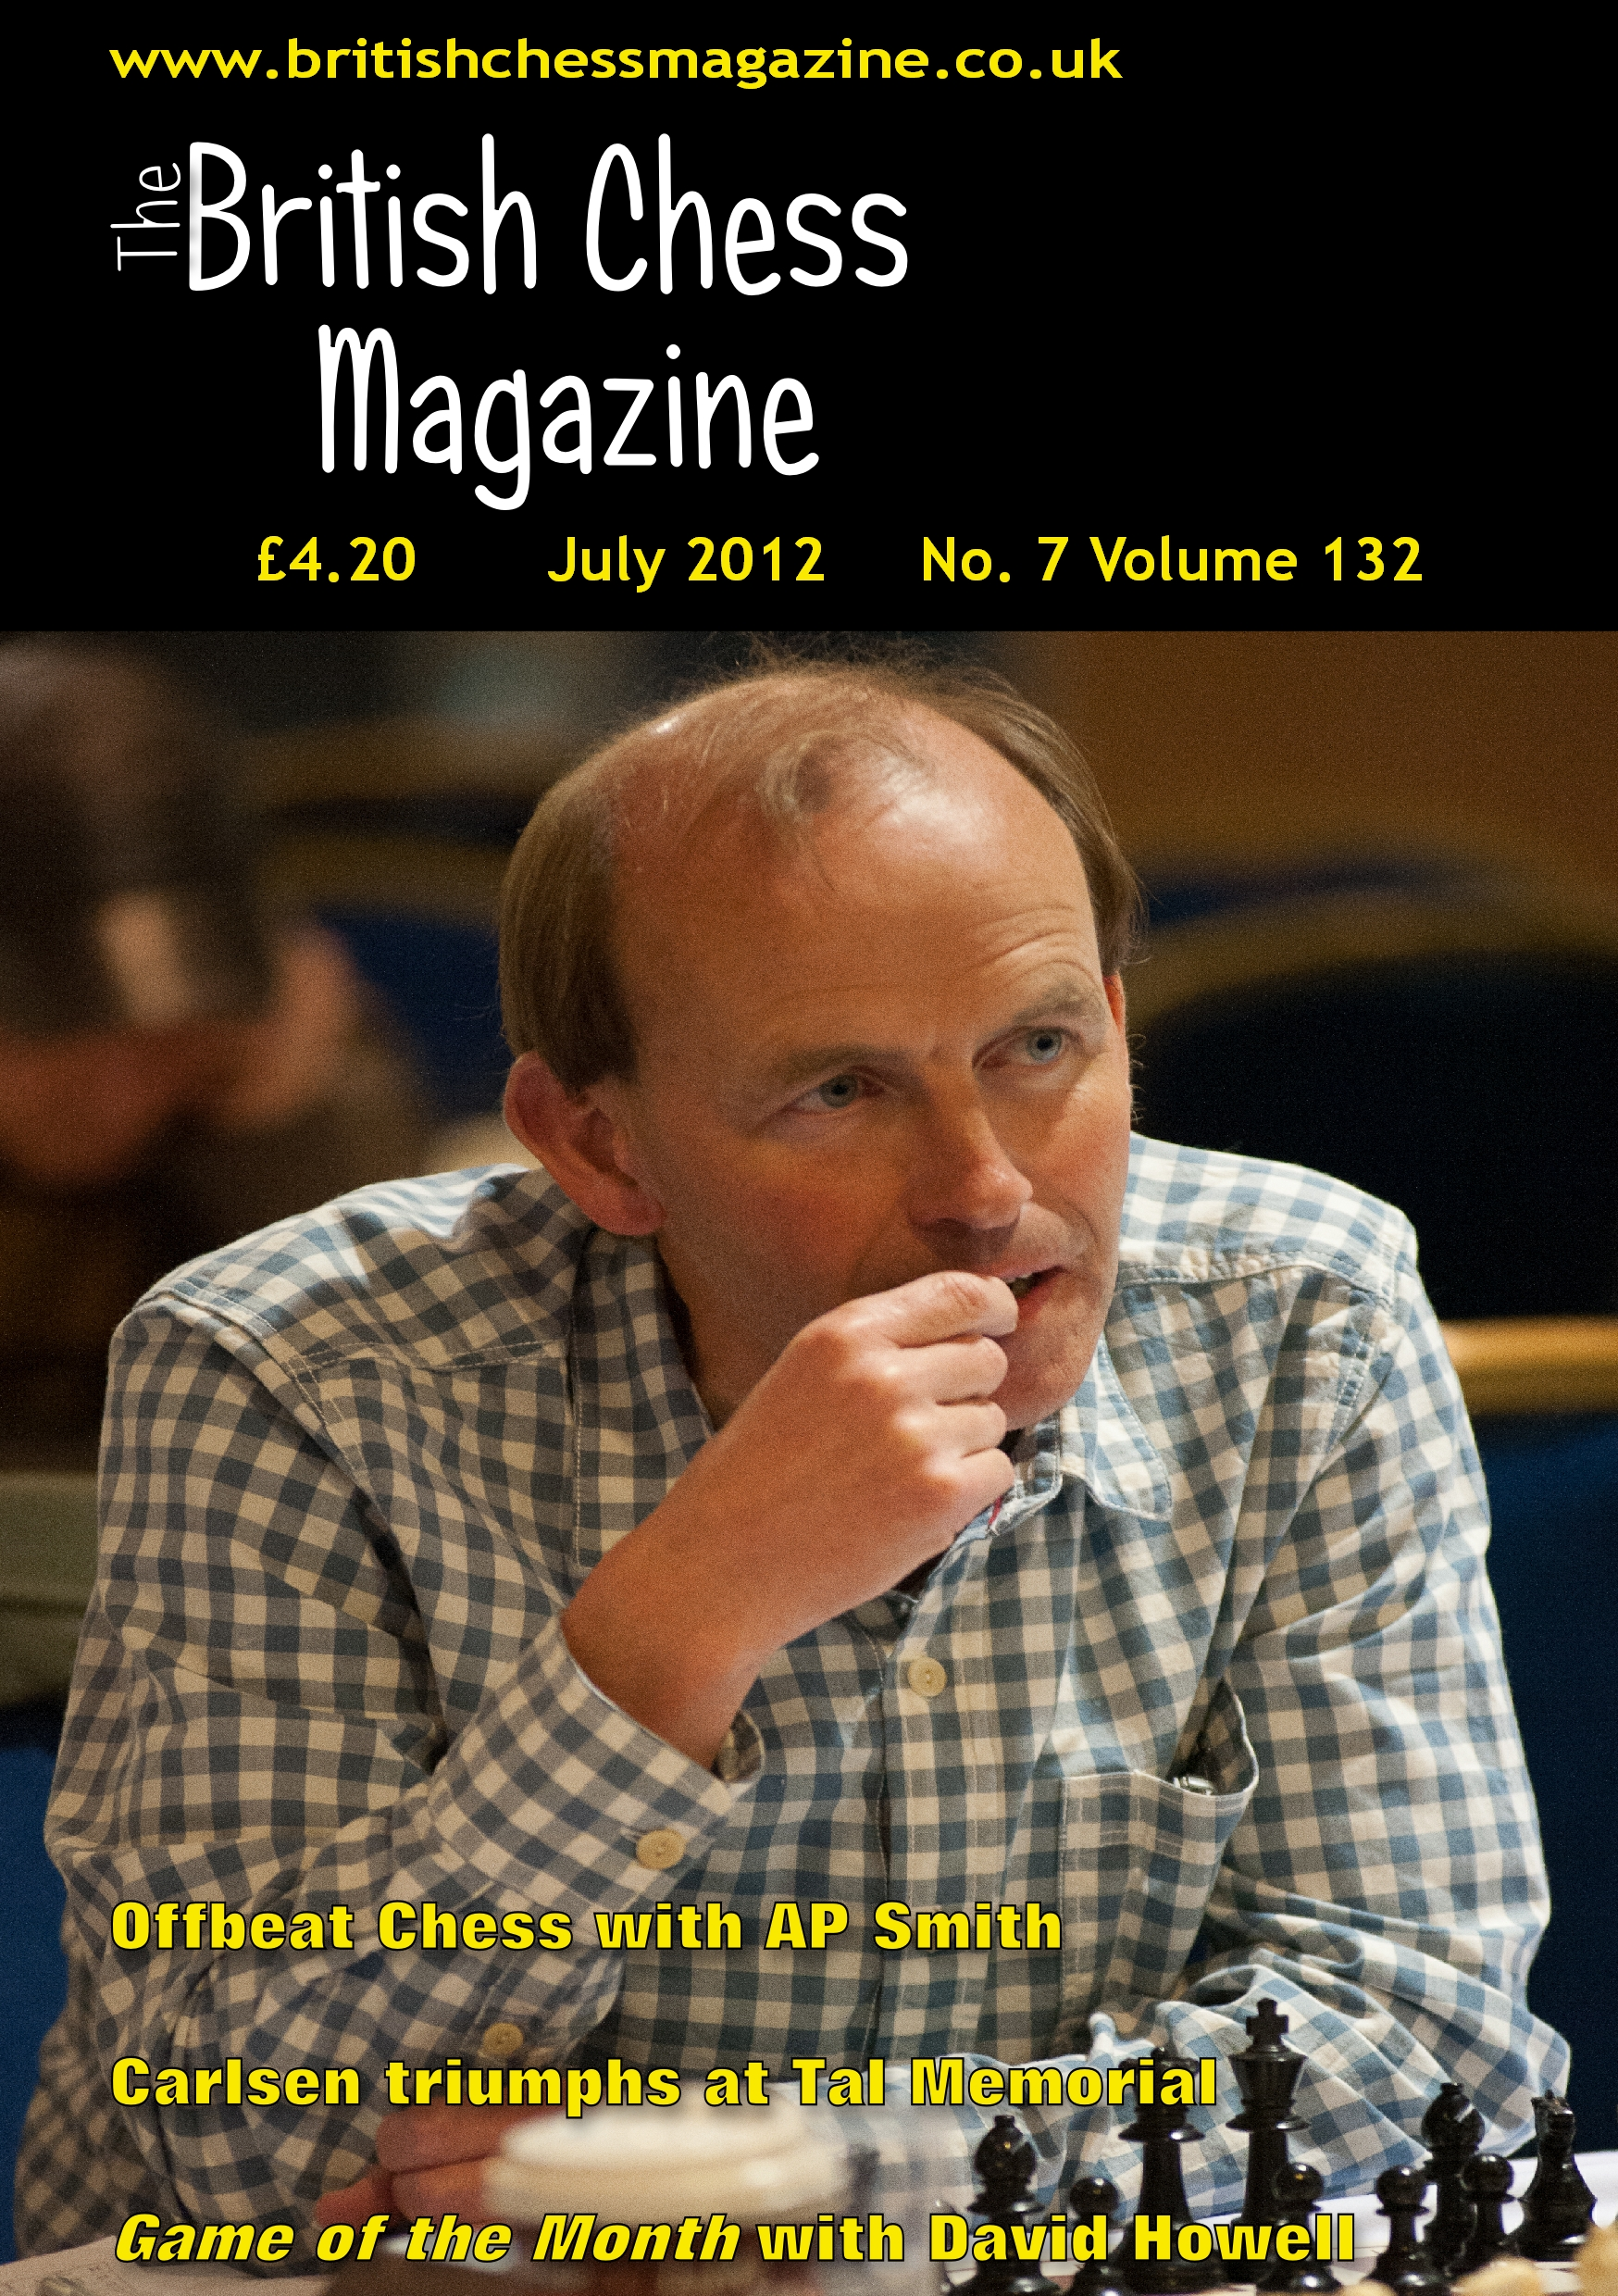 British Chess Magazine, Volume CXXXII (132), Number 7 (July) front cover features FM Andrew Smith from the final 4NCL weekend of the 2011-2012 season, courtesy of John Upham Photography